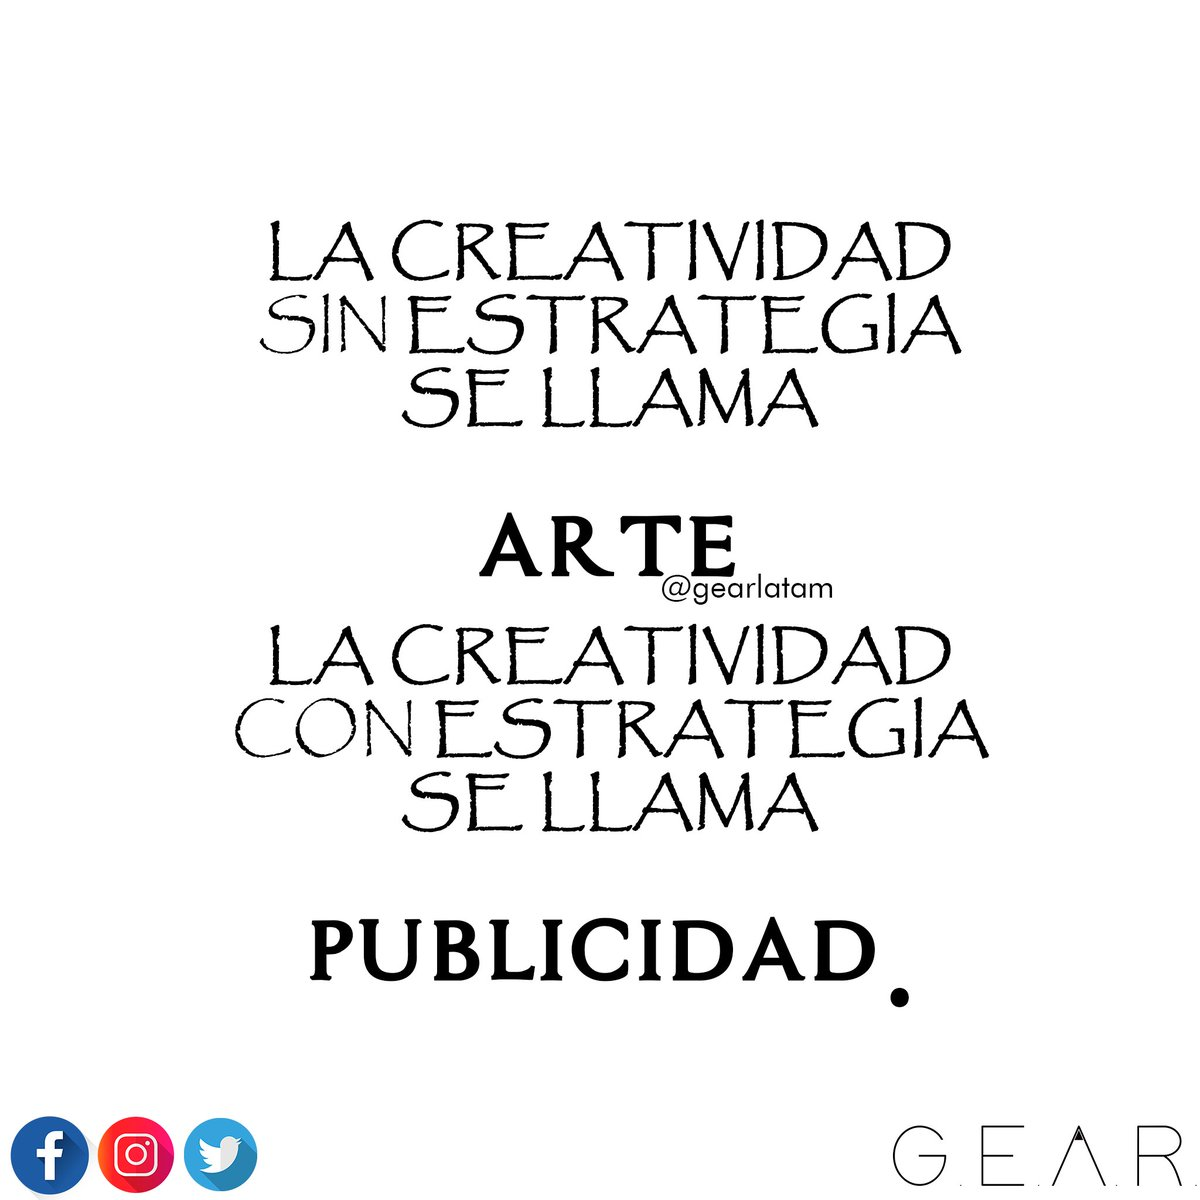 #Emprendimiento #MarcaPersonal #Marketing #Diseno #Branding #Consultoria #Tecnologia #Itil #Proyectos #Infraestructura @gearlatam WhatsApp 316-280-9718<br>http://pic.twitter.com/2fHq37t6uk